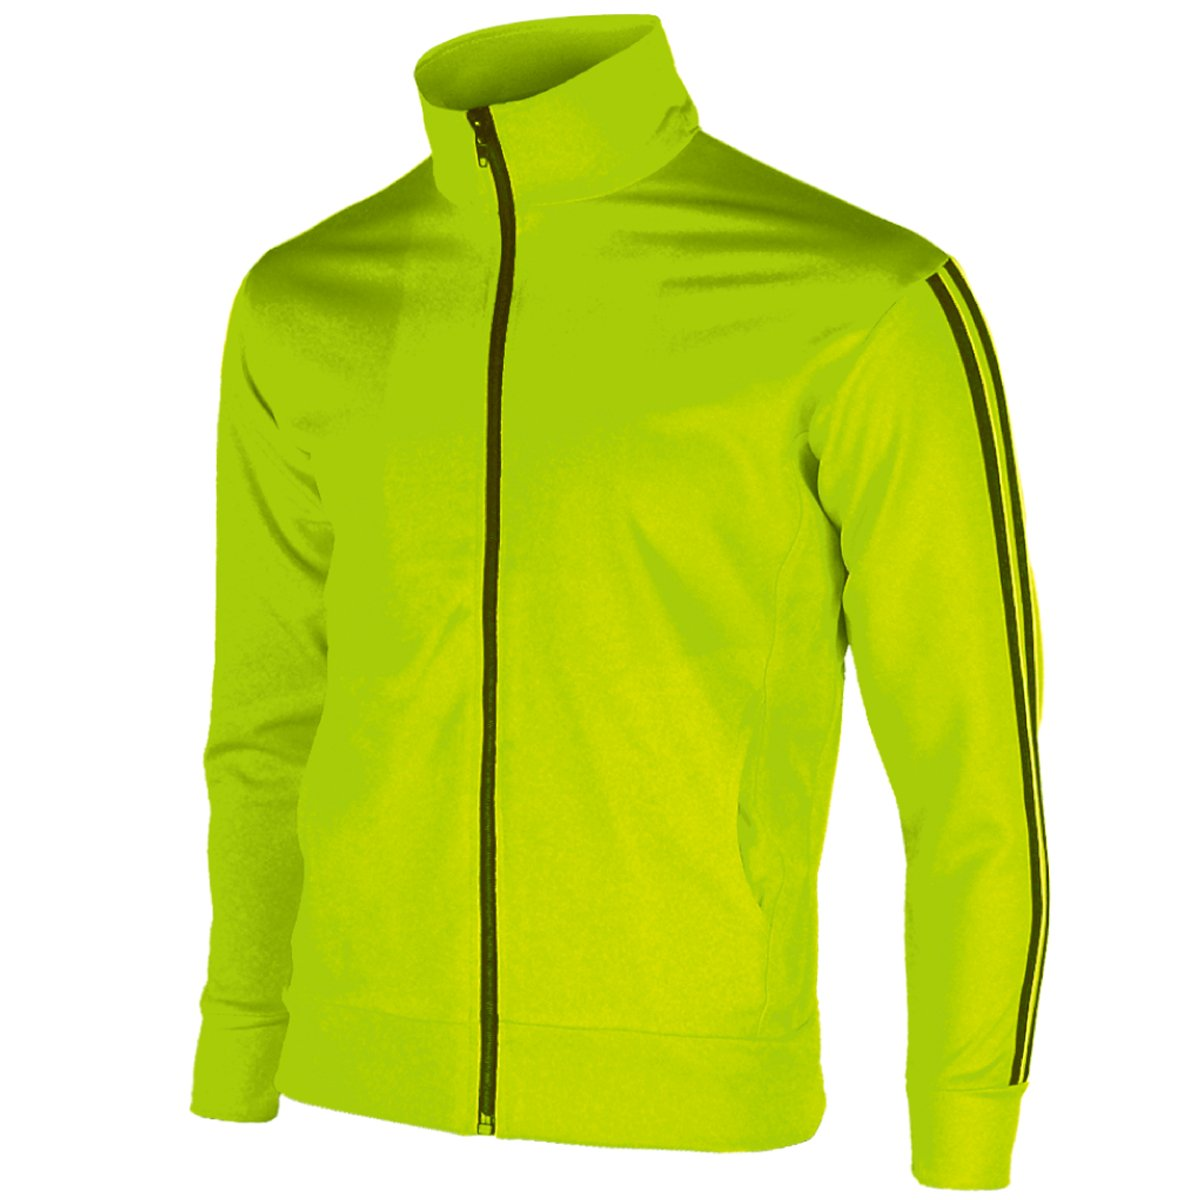 myglory77mall Men's Running Jogging Track Suit Warm